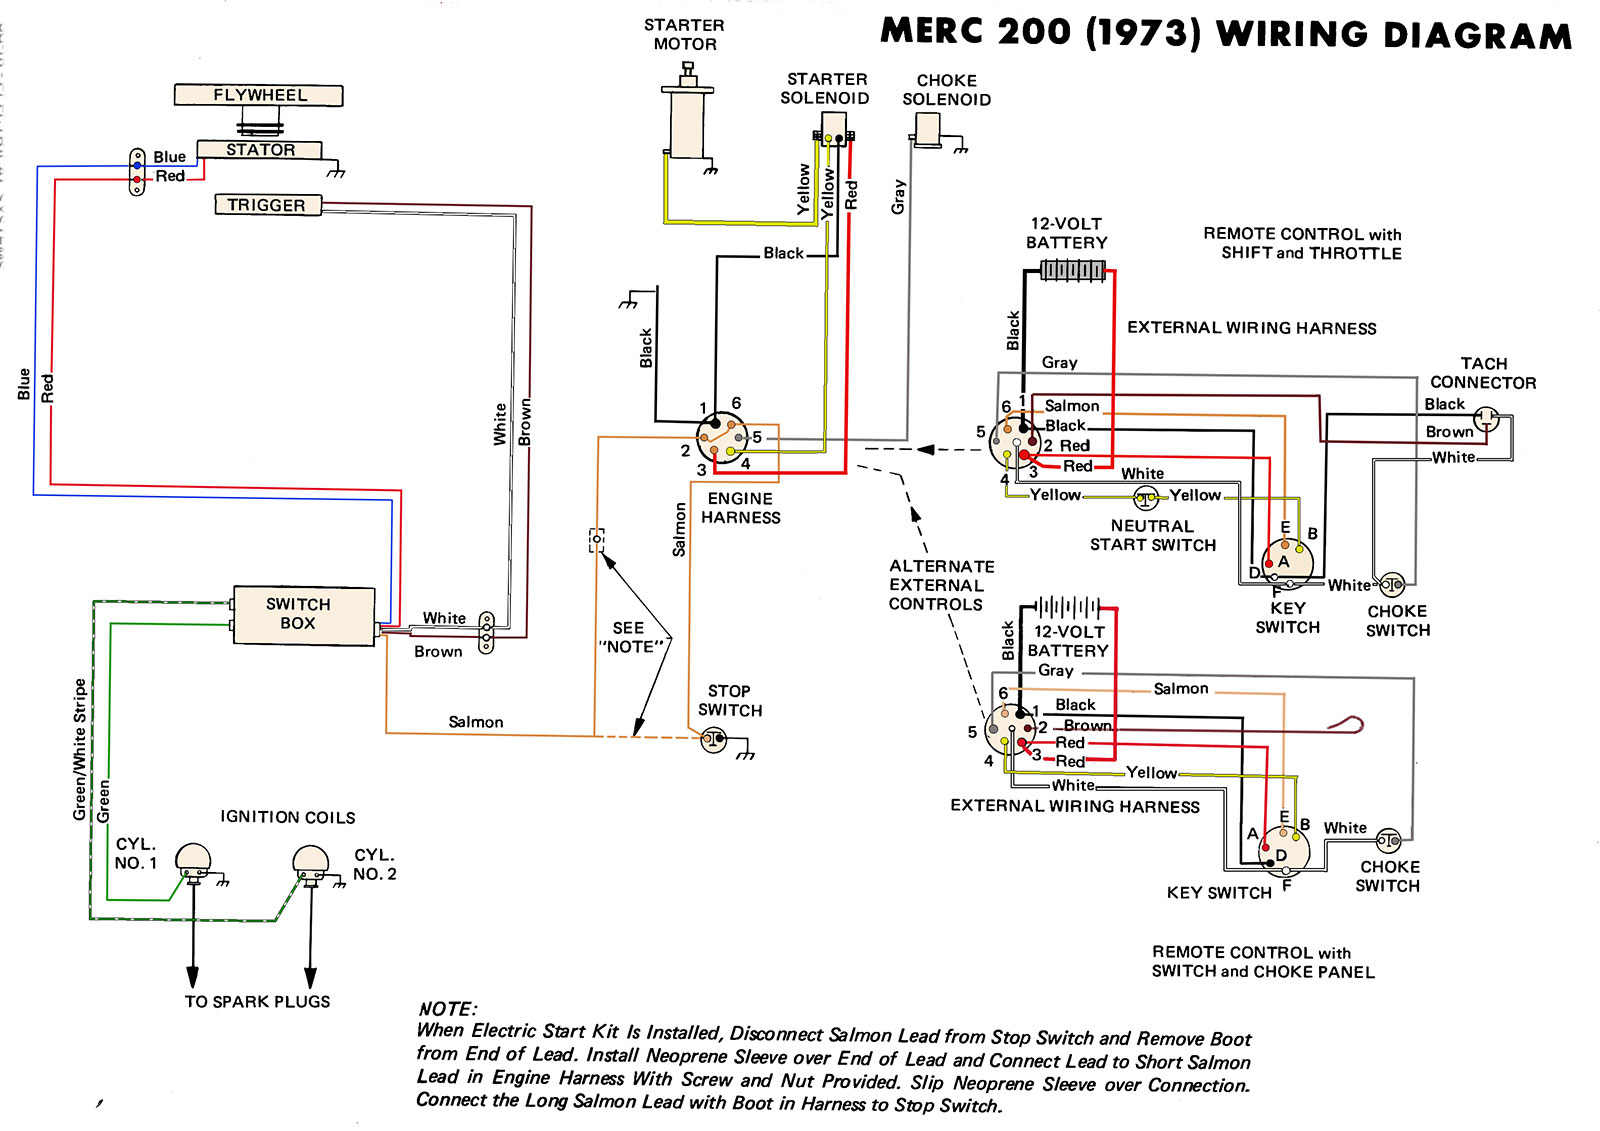 50 Wiring Harness Diagrams | Wiring Diagram on mercury 115 wiring harness, mercury 90 wiring harness, mercury smartcraft wiring harness, ranger wiring harness, mercruiser wiring harness, mercury 850 wiring harness, dodge wiring harness, mercury control box wiring harness, yanmar wiring harness, mercury 500 wiring harness, mercury marine wire harness, ford wiring harness, omc wiring harness, minn kota trolling motor wiring harness, pcm wiring harness, stratos wiring harness, verado wiring harness, mercury optimax wiring harness, glastron wiring harness, mercury mariner wiring harness,